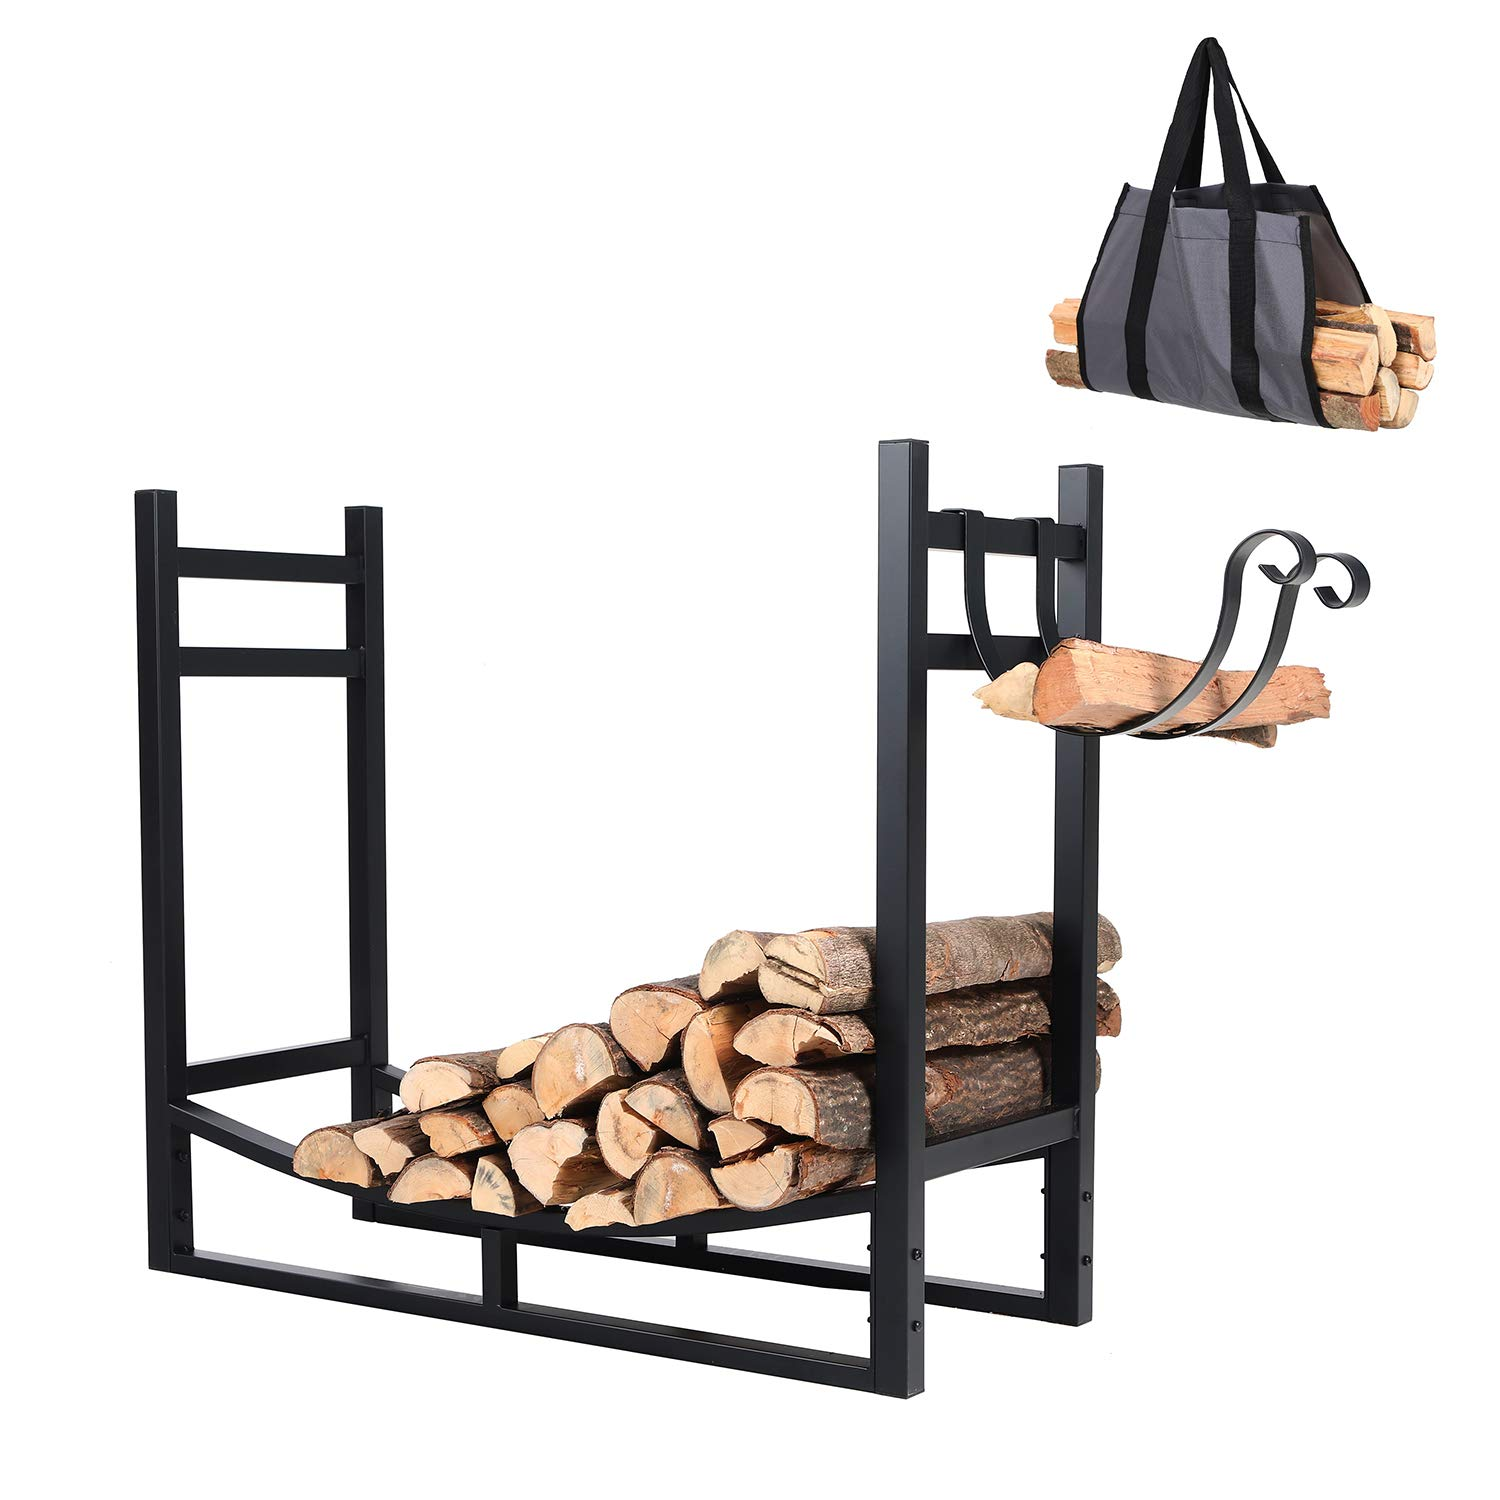 PHI VILLA Heavy Duty Firewood Racks Indoor/Outdoor Log Rack with Kindling Holder, 30 Inches Tall, Black by PHI VILLA